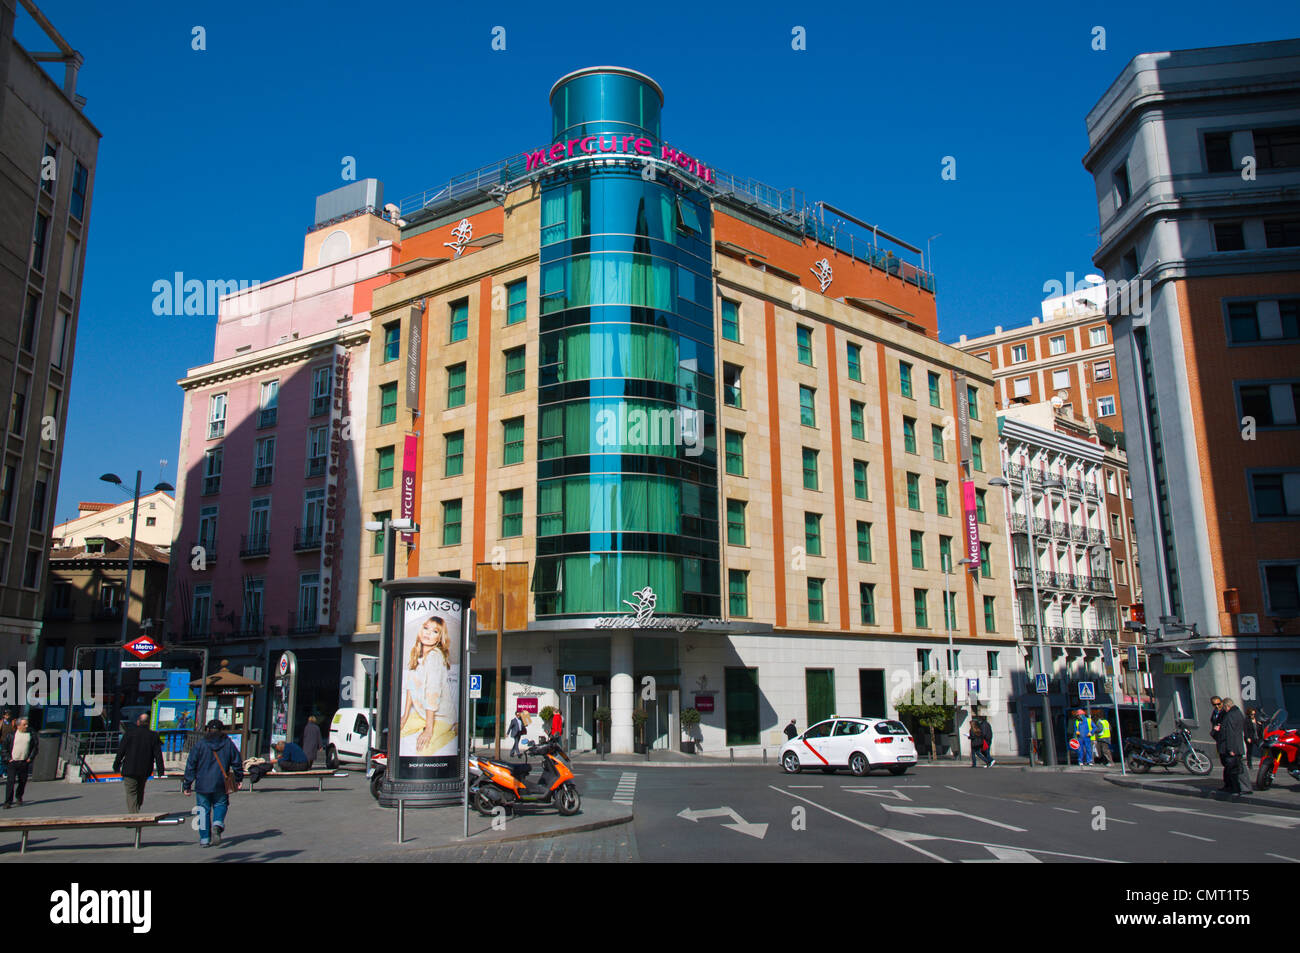 Hotel exe central madrid hotel exe el coloso madrid with hotel exe central madrid affordable - Exe central madrid ...